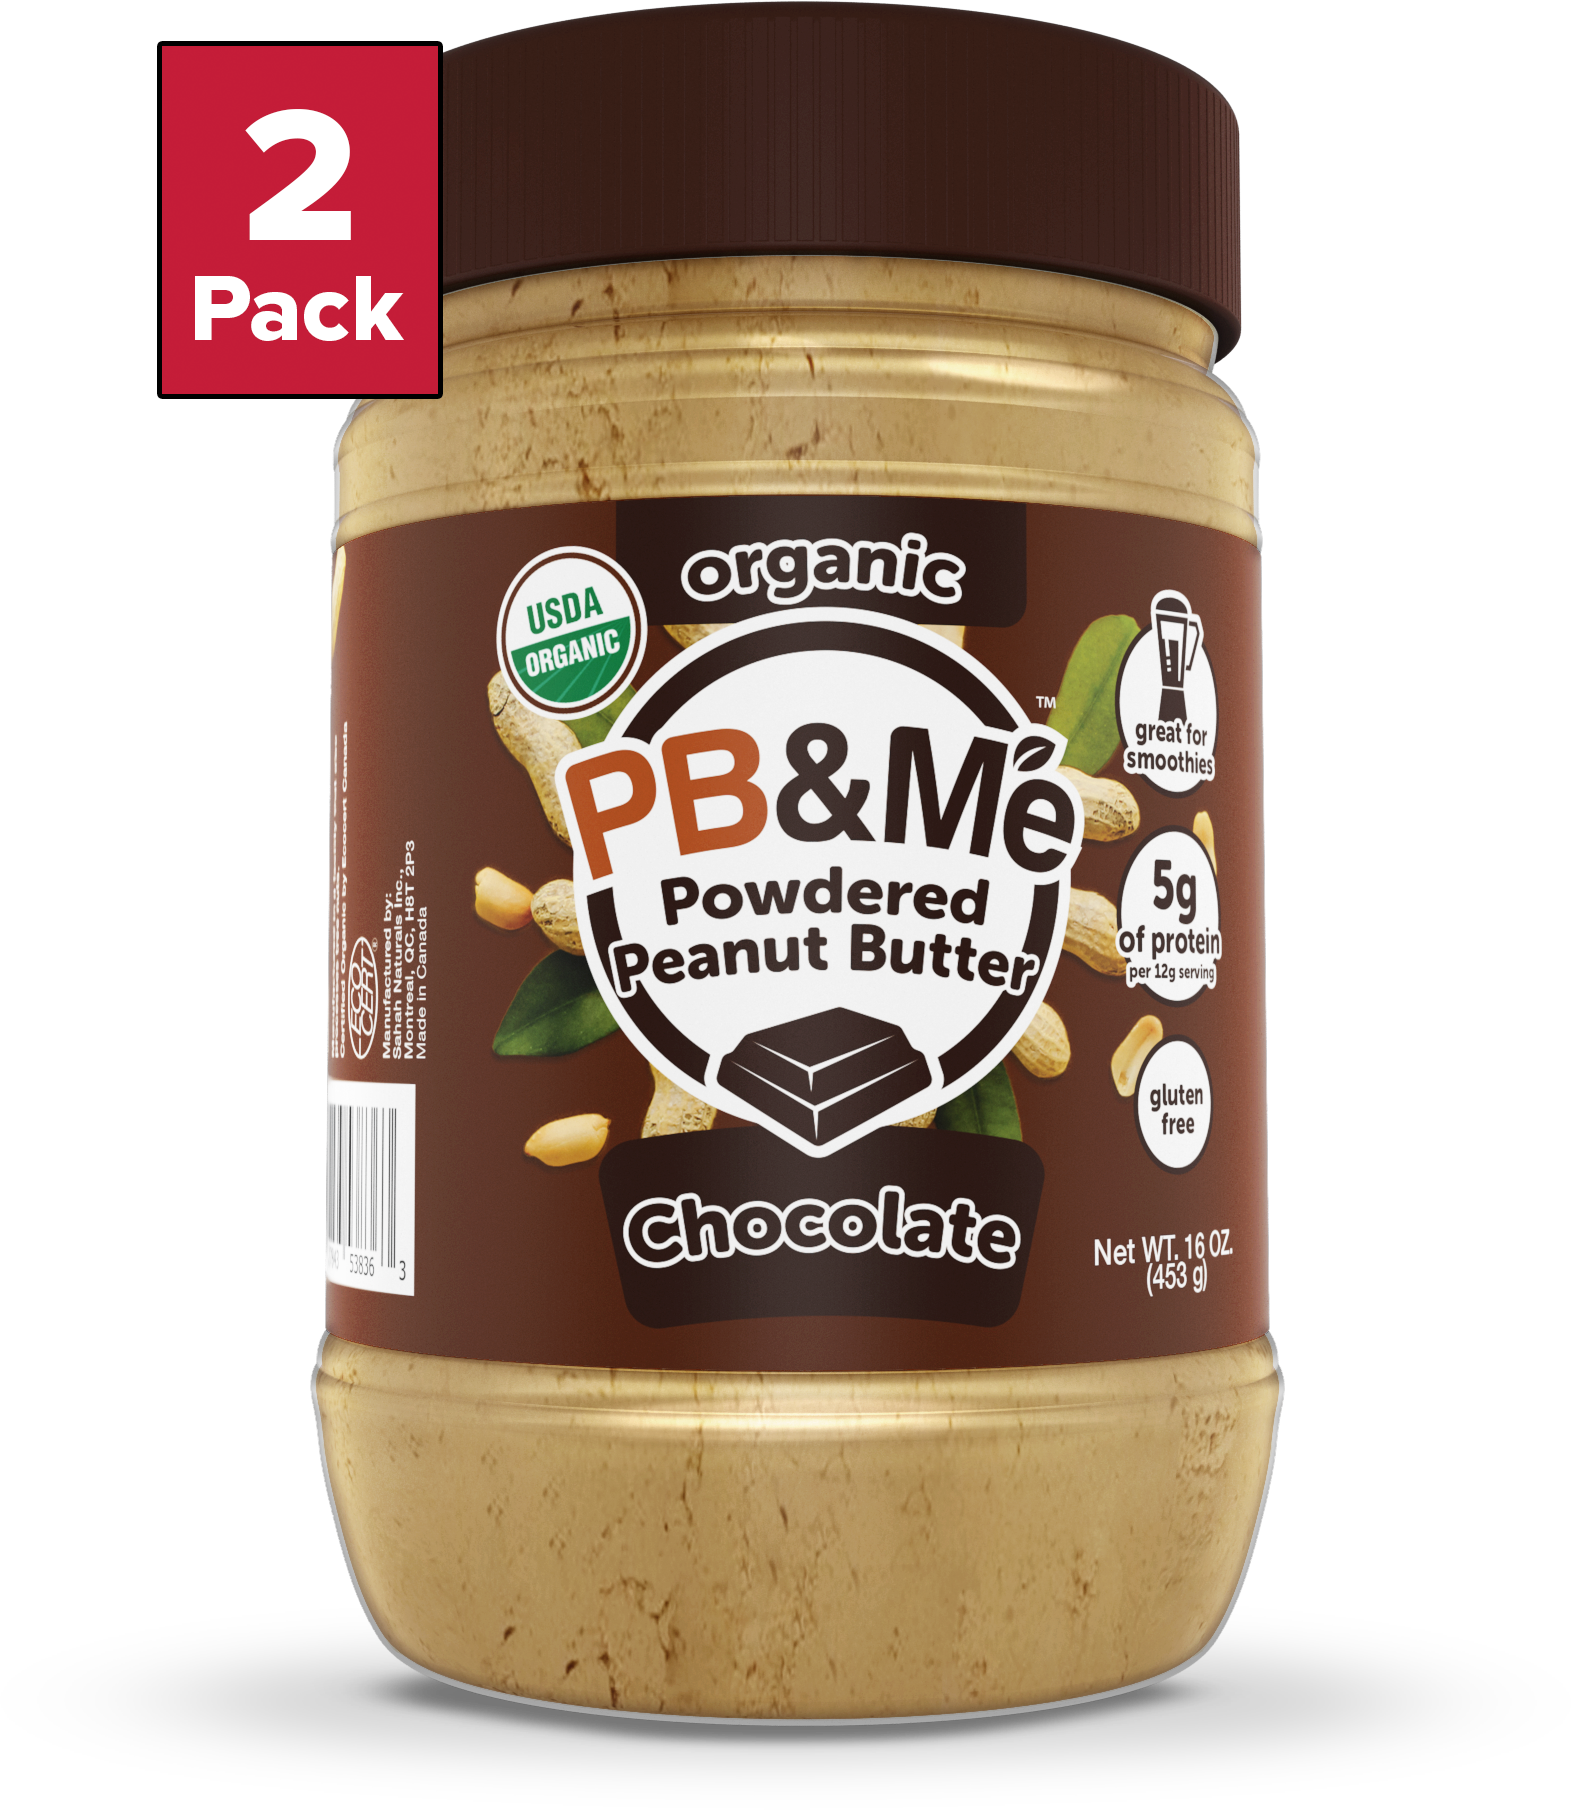 Organic Powdered Peanut Butter, Chocolate (16oz)